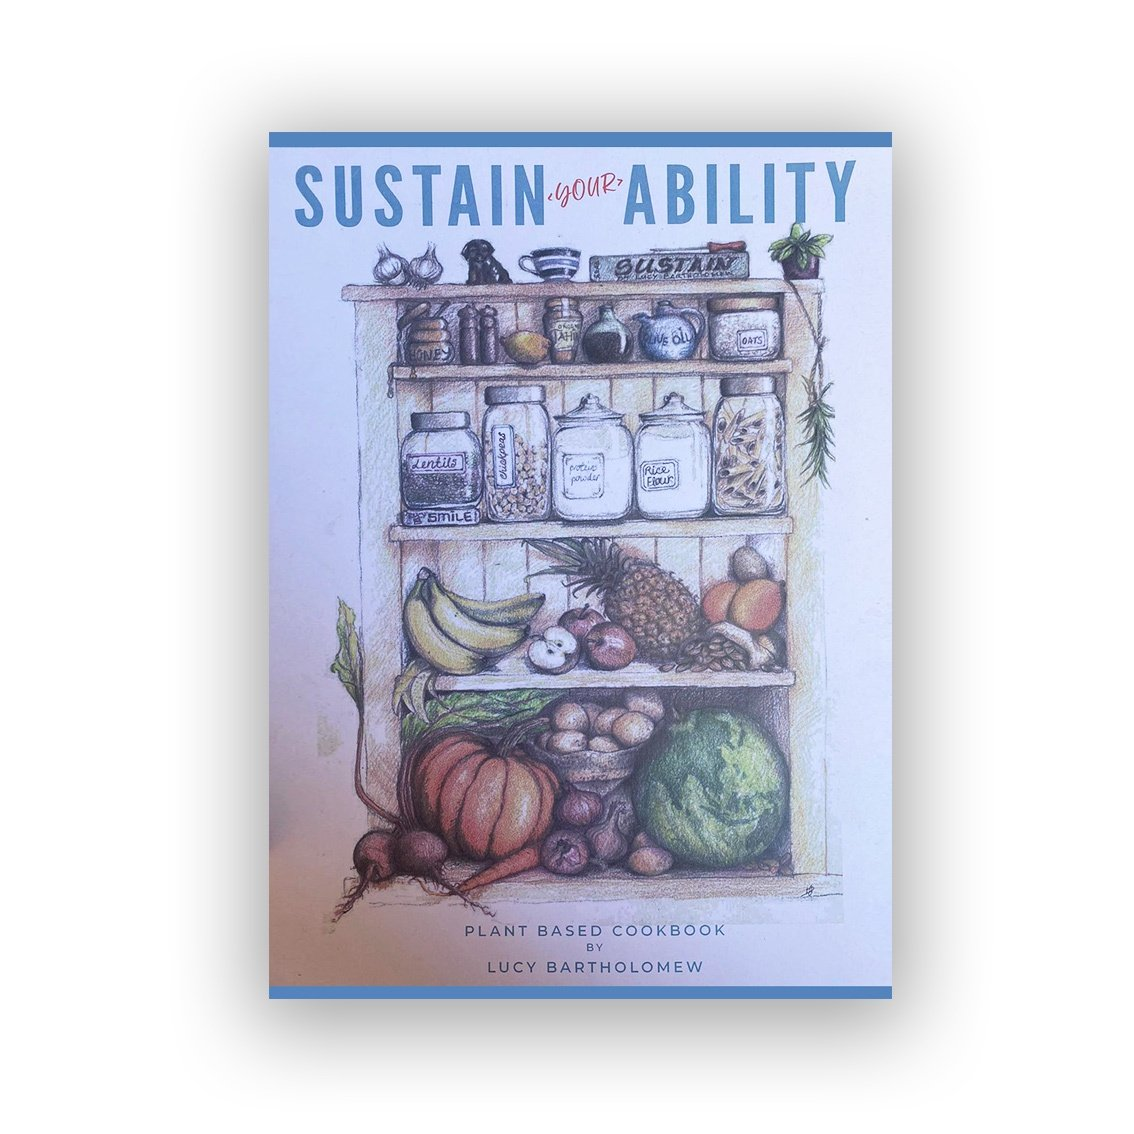 Sustain Your Ability - Lucy Bartholomew (Book) - Find Your Feet Australia Hobart Launceston Tasmania